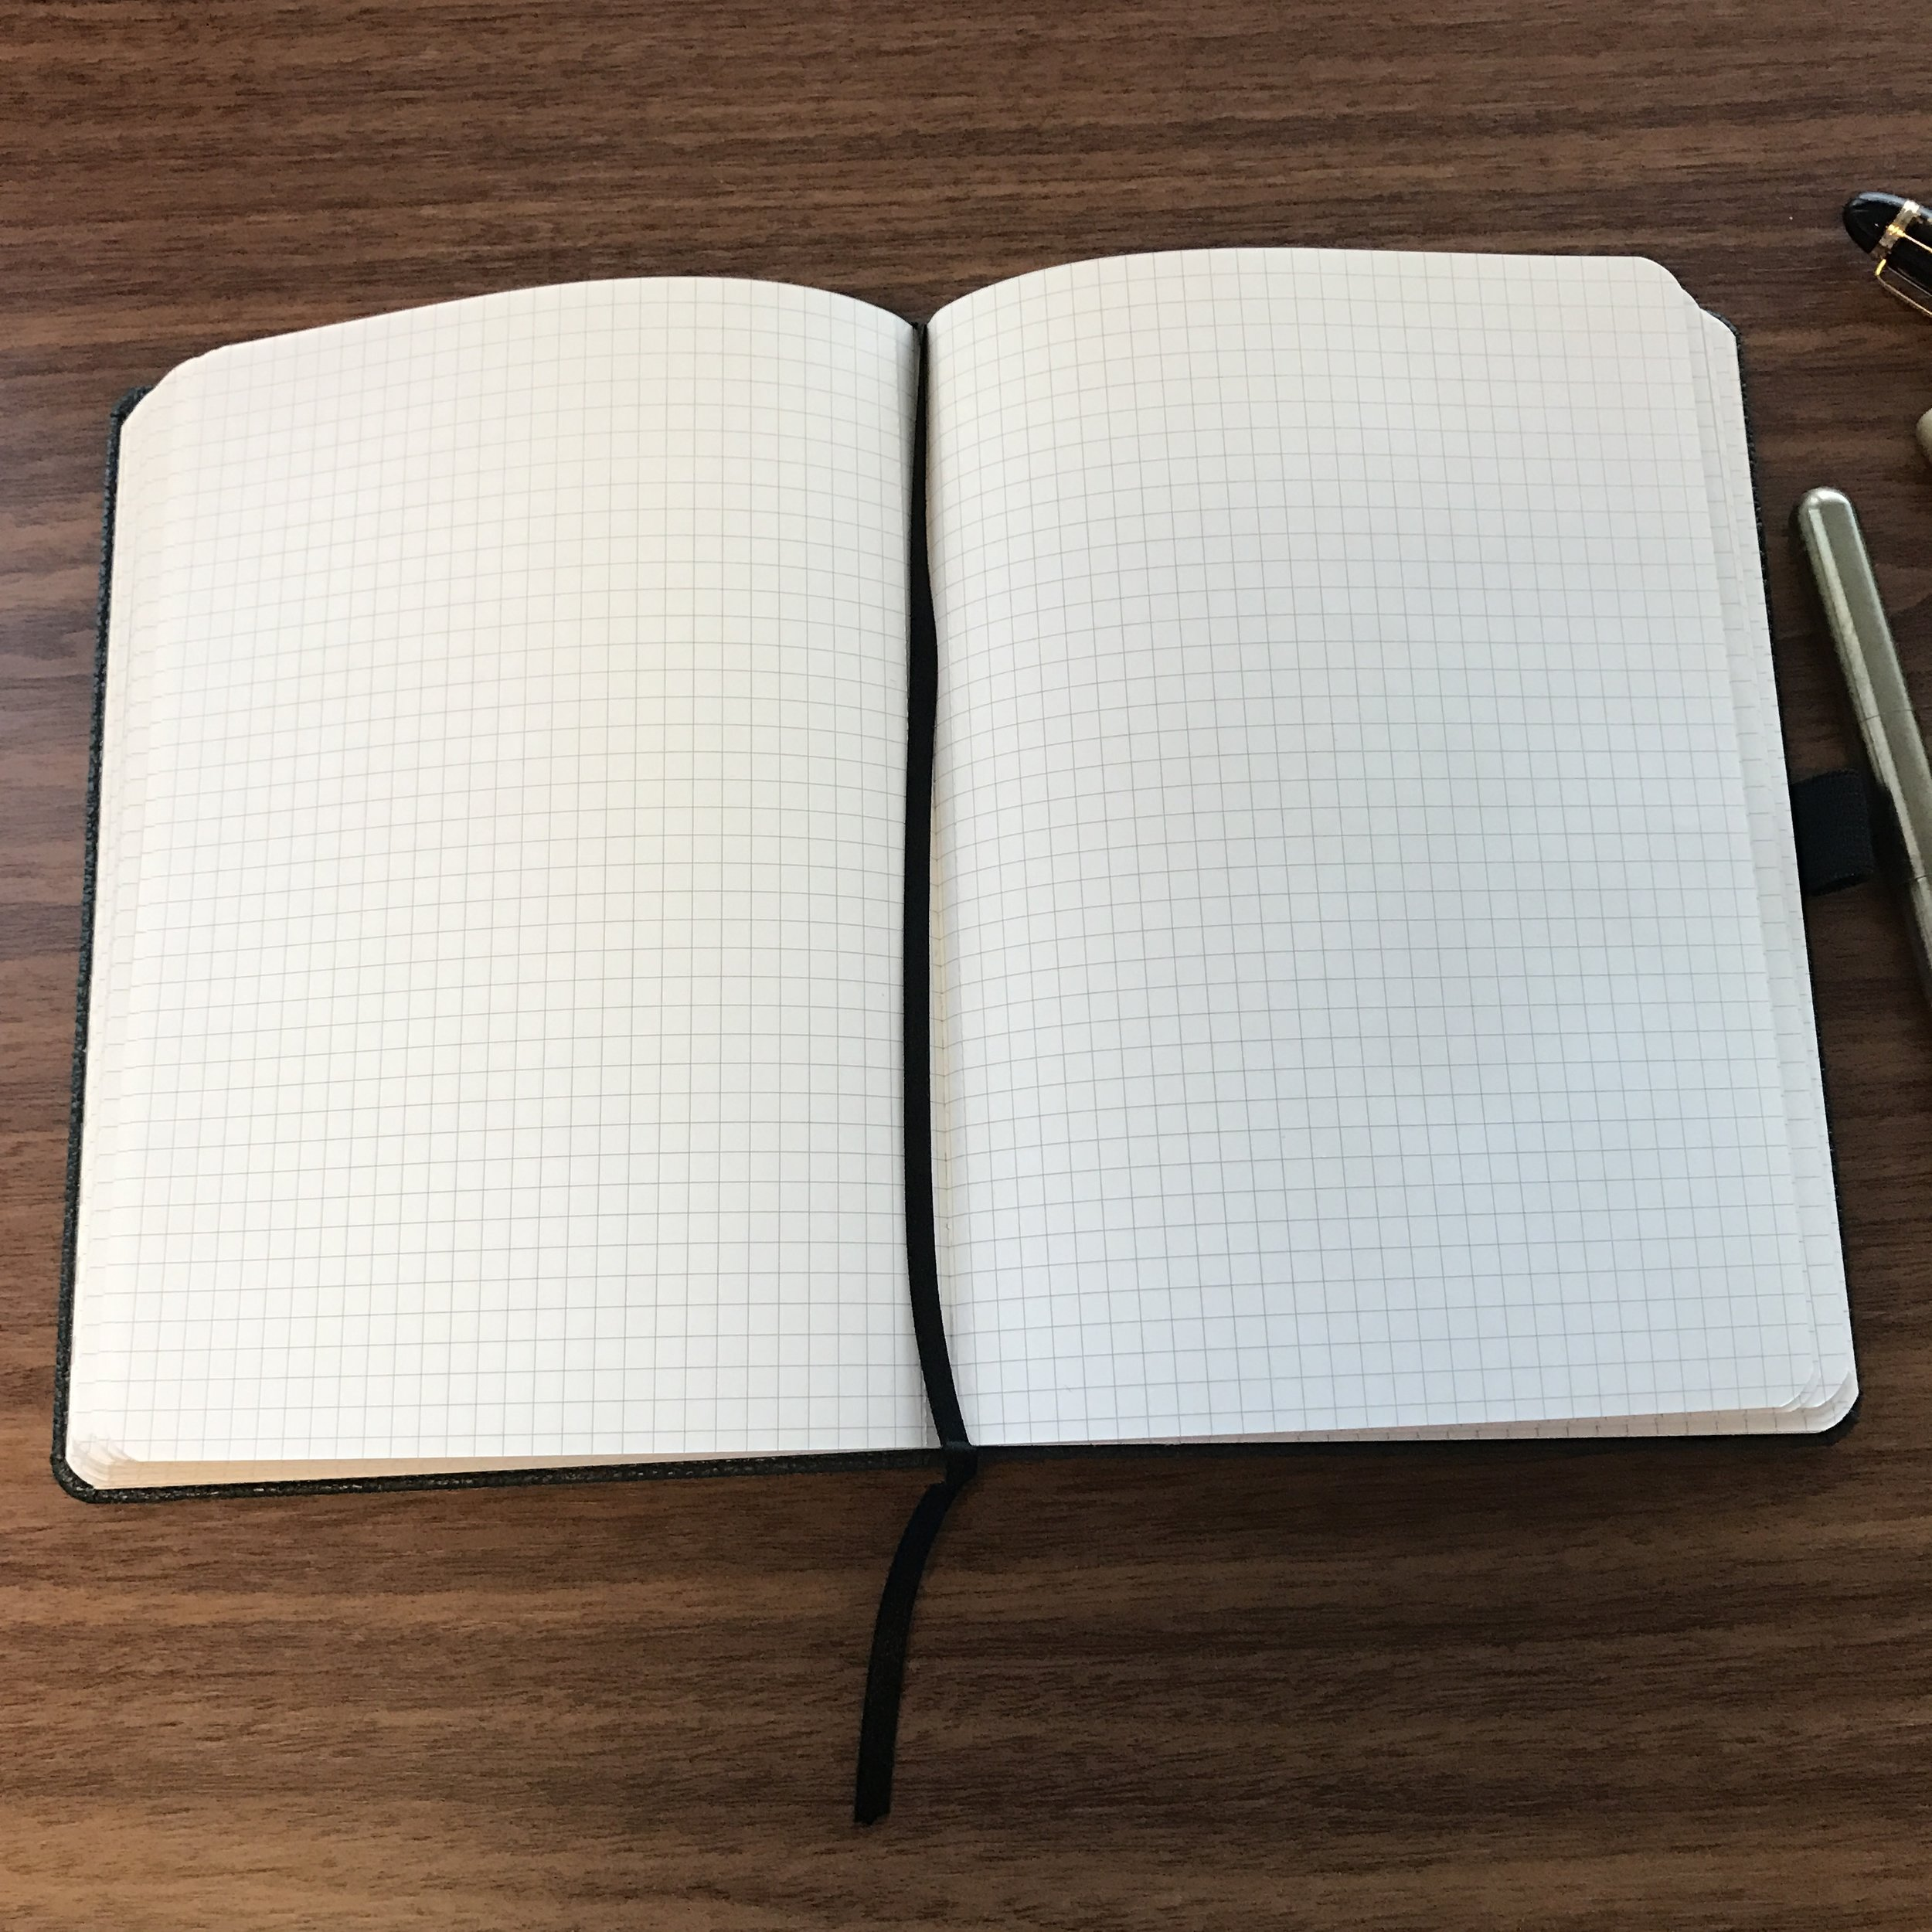 One great feature of the Dingbats* notebook is that it lays completely flat when open.